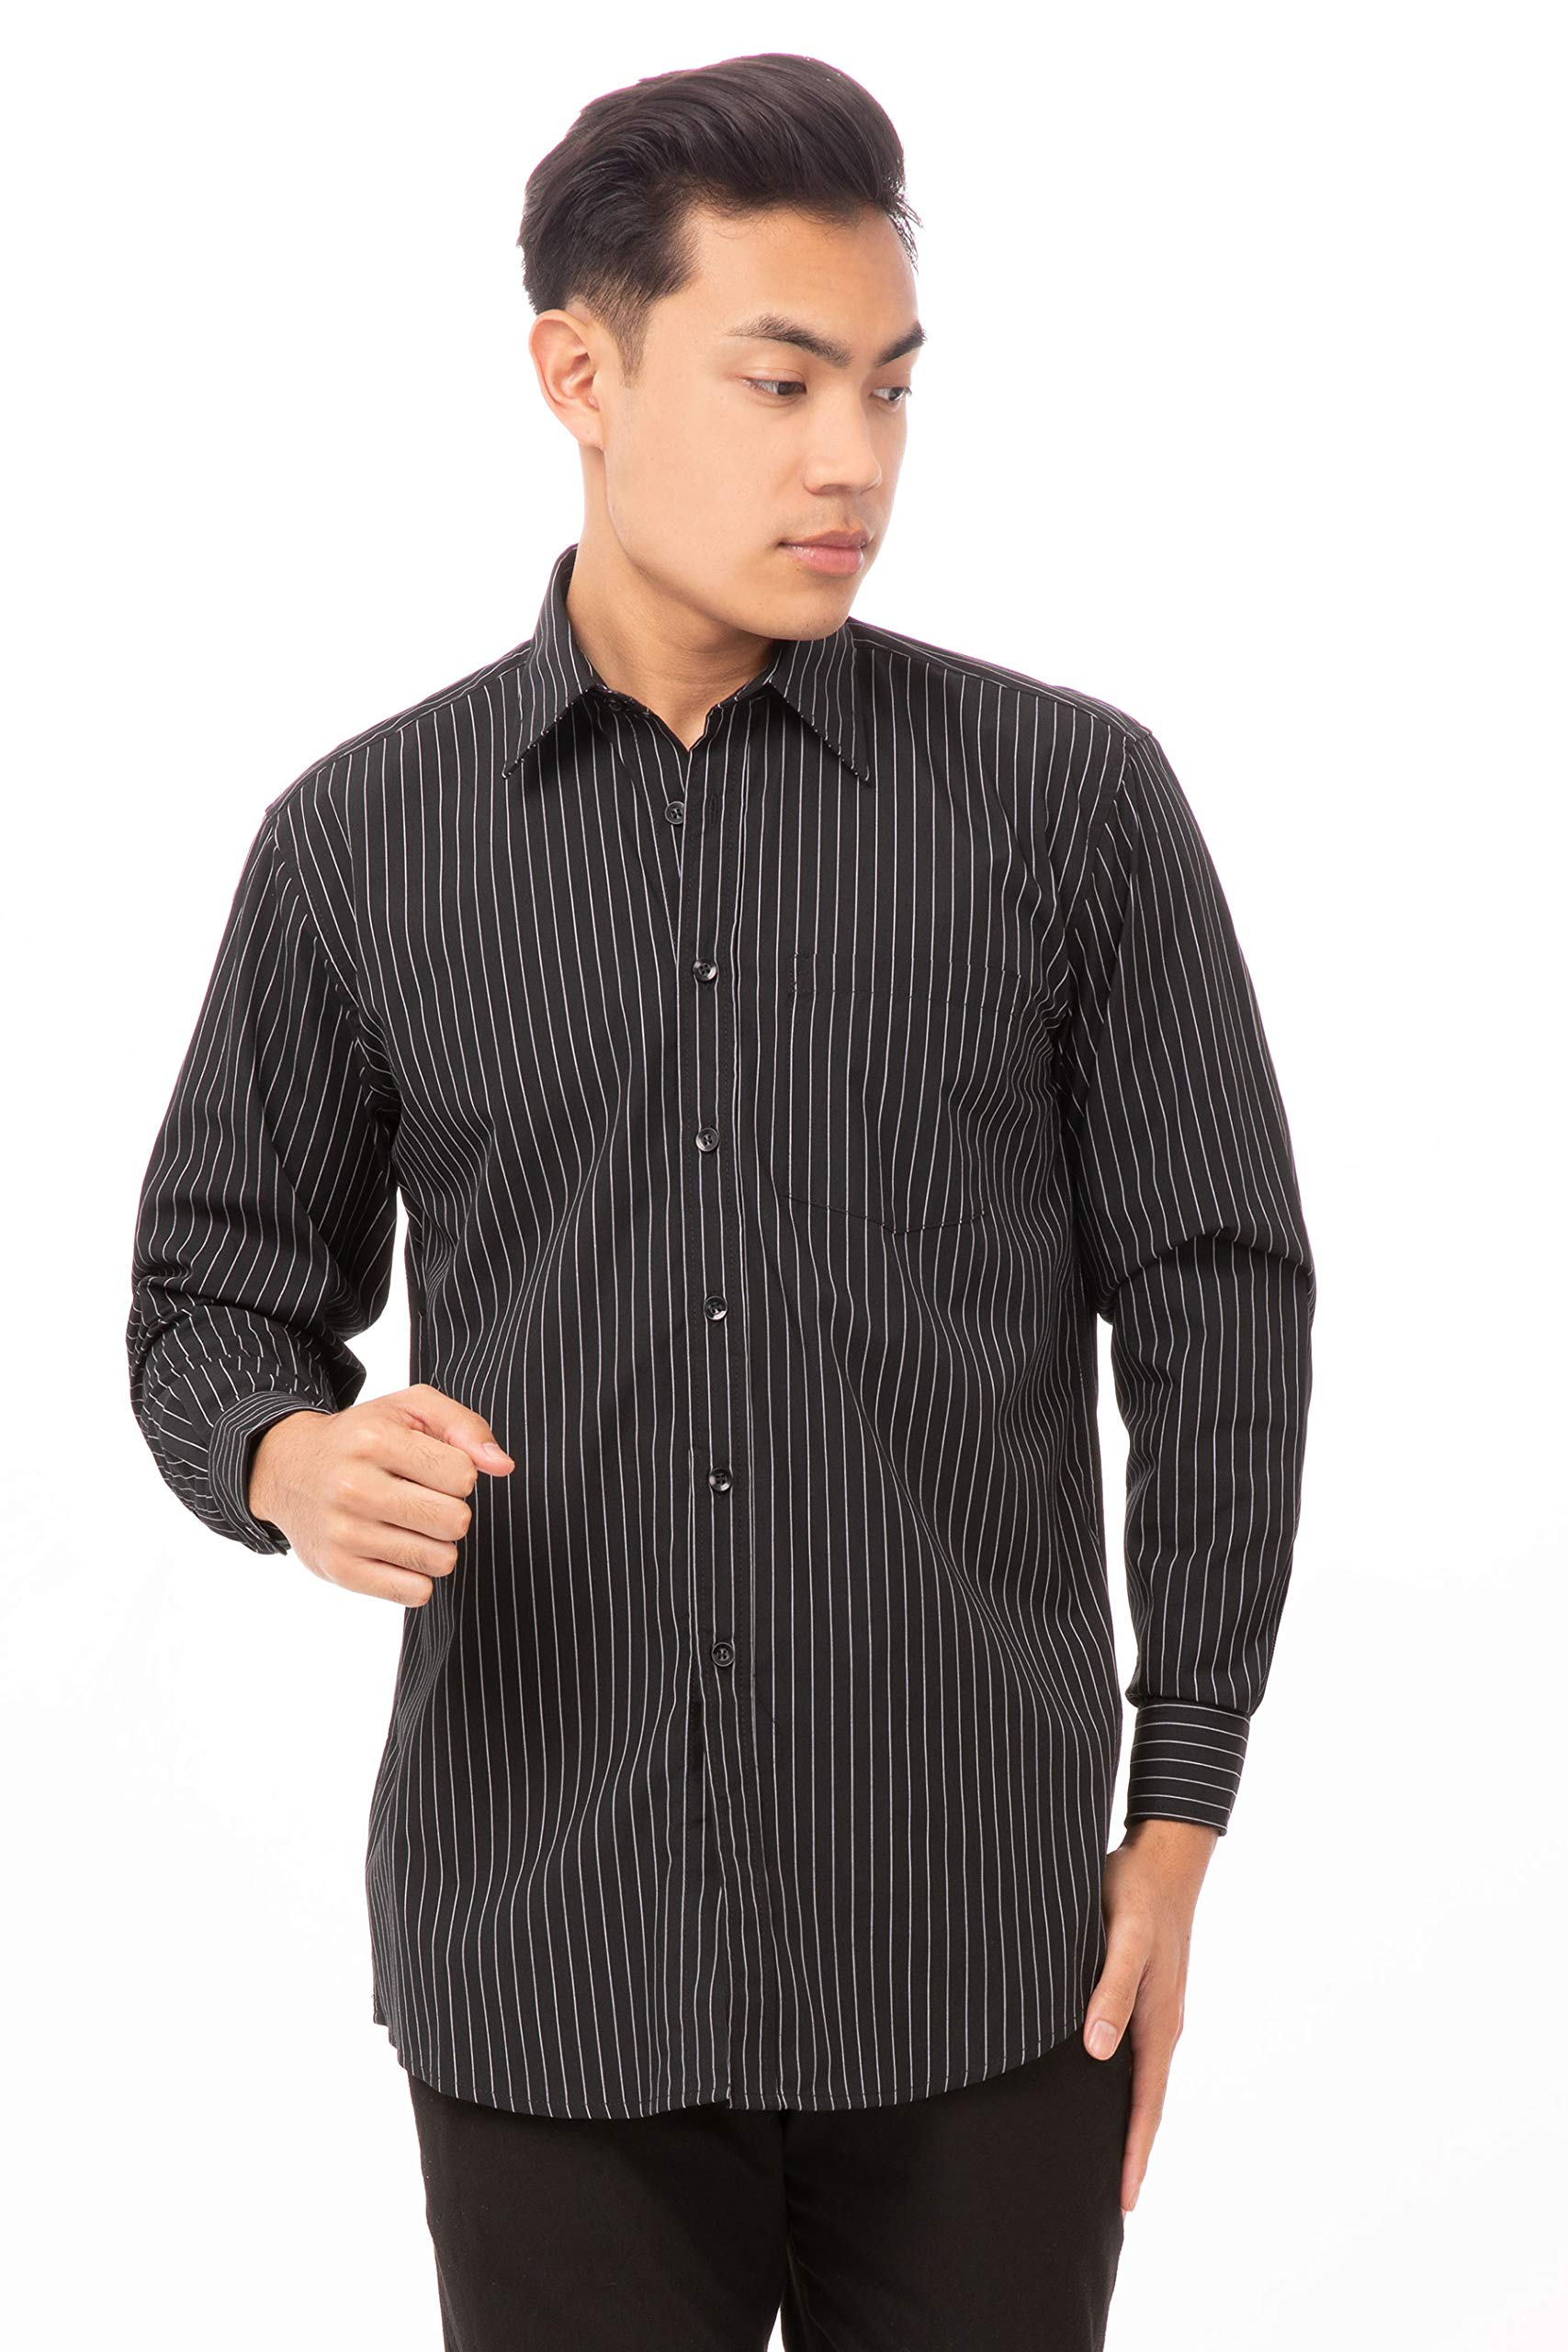 Chef Works Men's Basic Dress Shirt, Charcoal Dash, X-Large by Chef Works